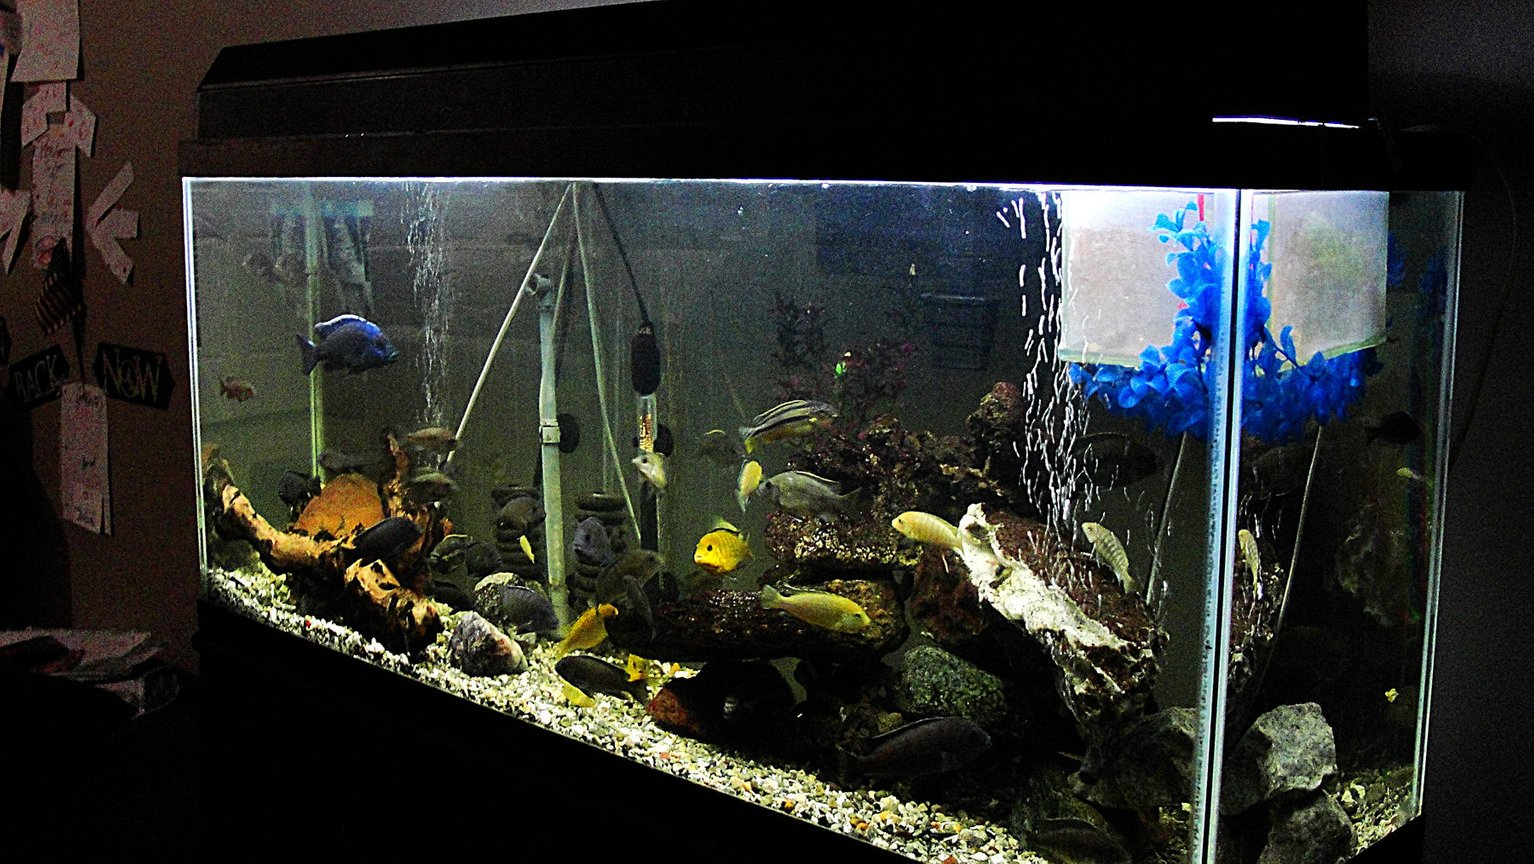 fish tank picture - 55 Gallon Cichlid Tank - Elongated w/ Breeder Net. I have a great picture of a pair spawning